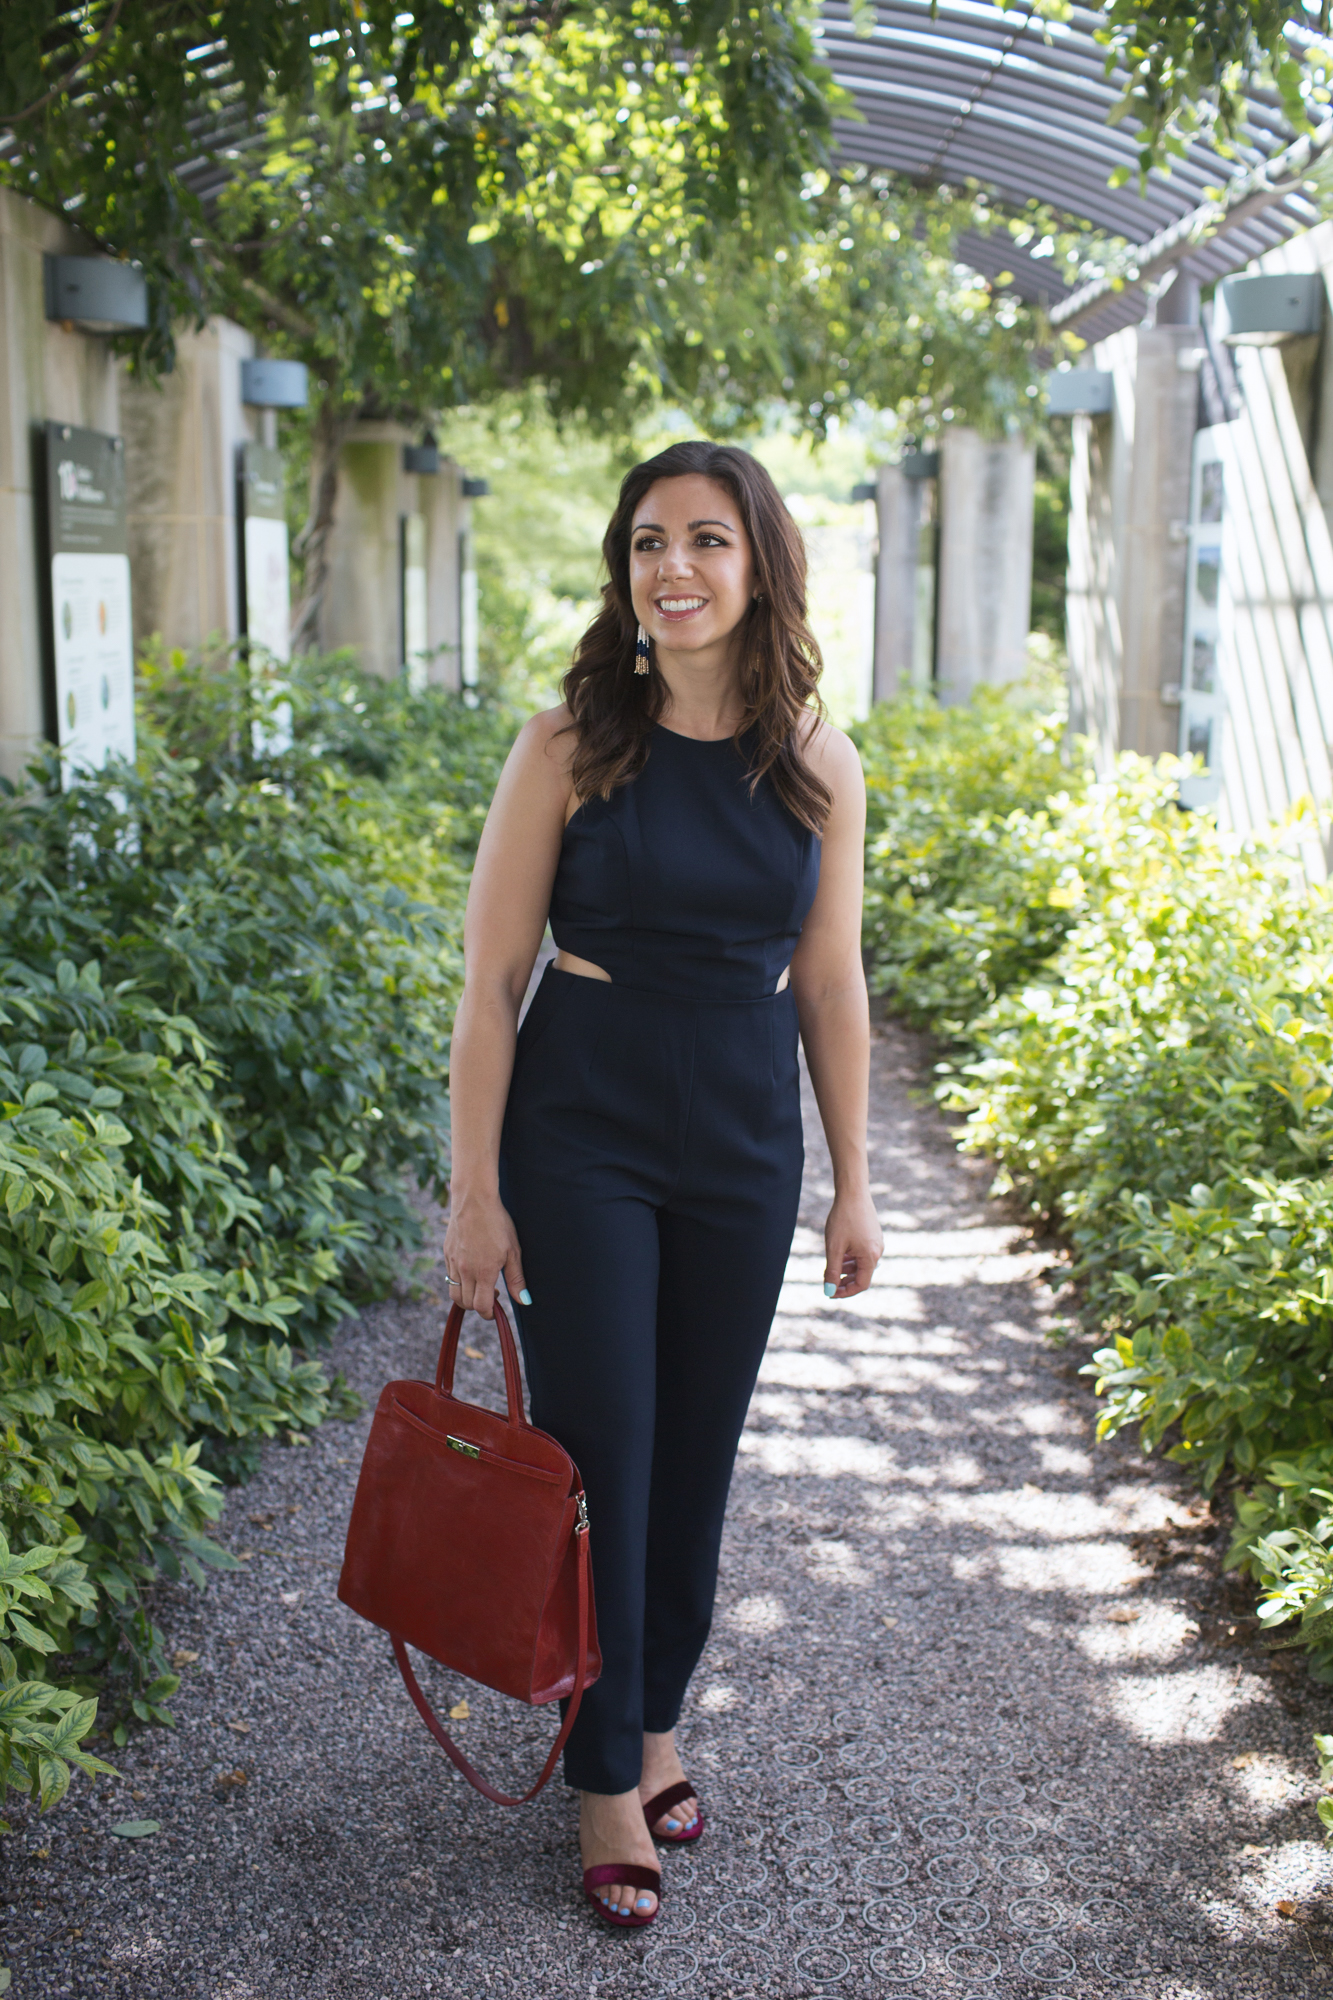 styling a navy jumpsuit and vintage Furla bag from Current Boutique | Ann Taylor | Appropriate Jumpsuits for Work featured by popular Chicago style blogger Glass of Glam